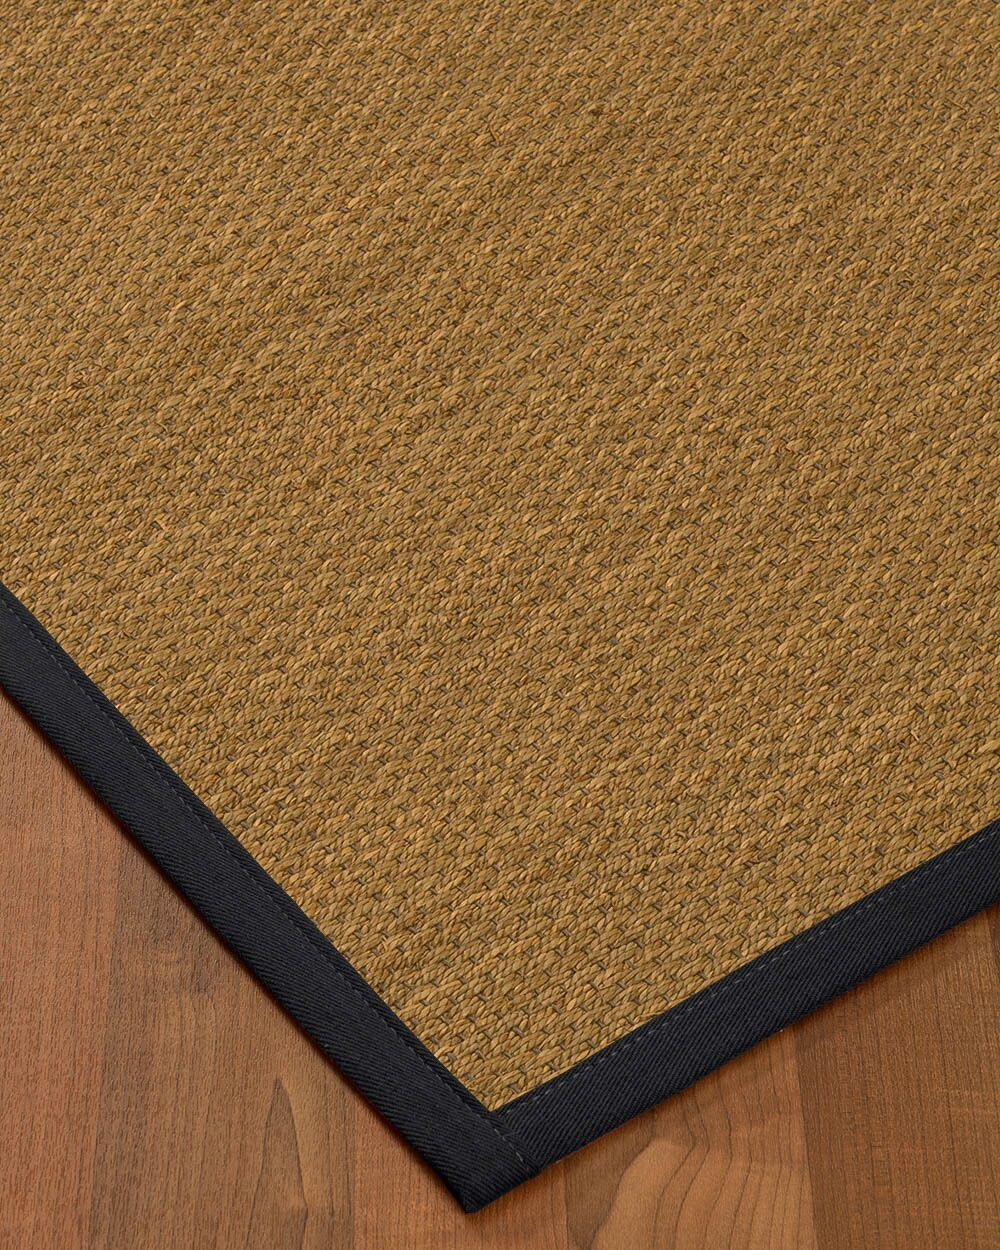 Chavis Border Hand-Woven Beige/Midnight Blue Area Rug Rug Size: Rectangle 9' x 12', Rug Pad Included: Yes